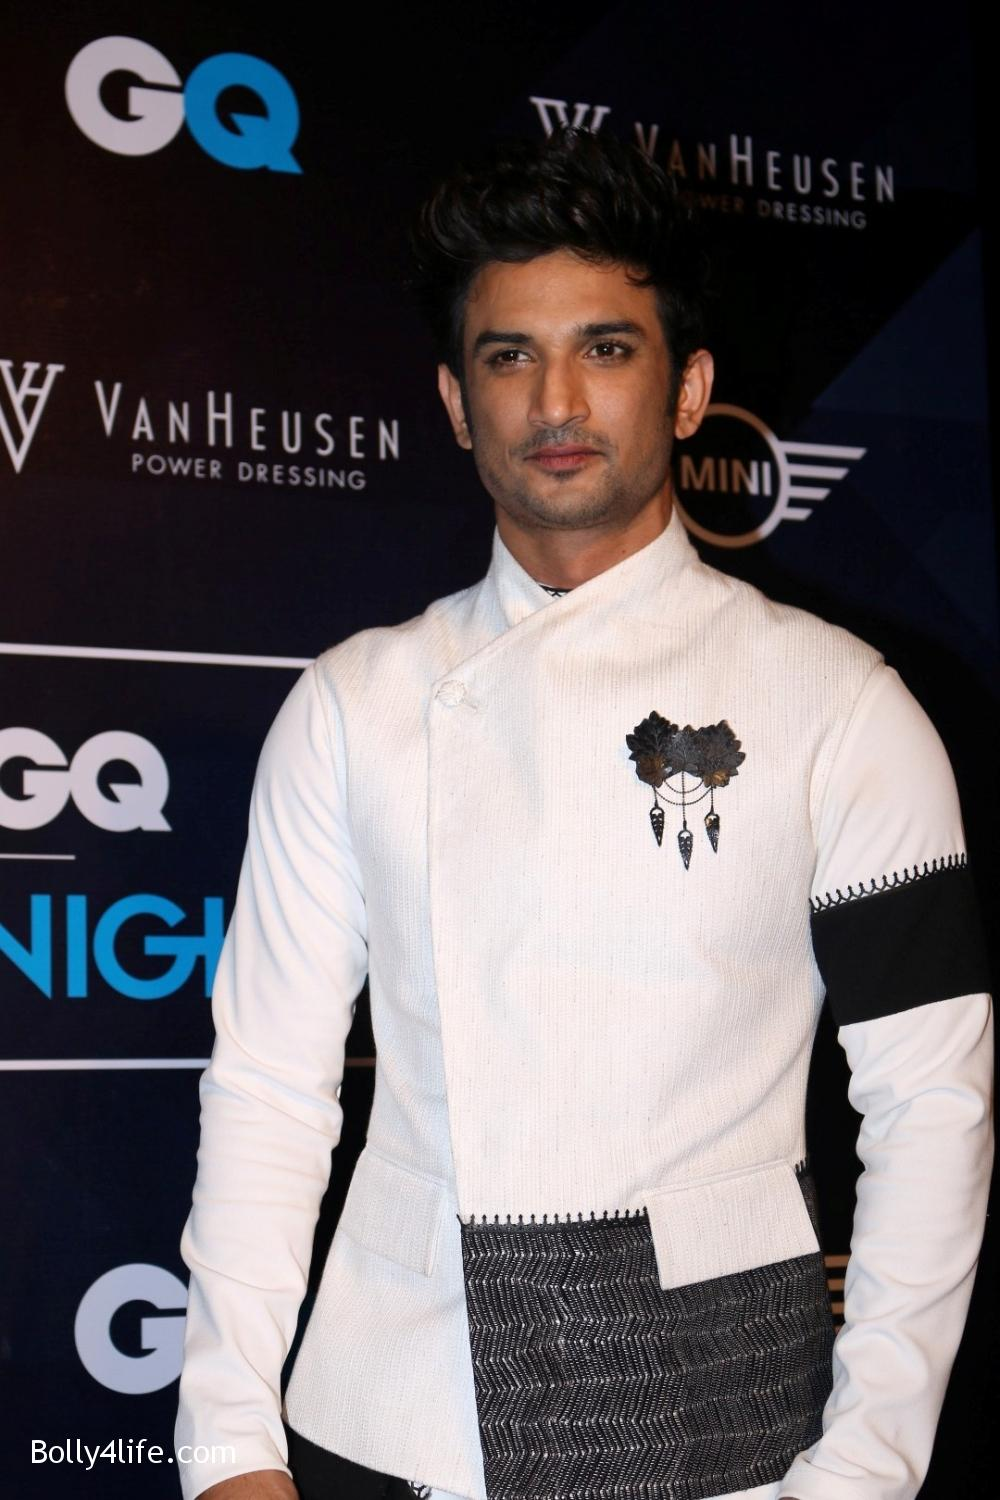 Sushant-Singh-Rajput-during-the-Van-Heusen-GQ-Fashion-Nights-in-Mumbai-4.jpg